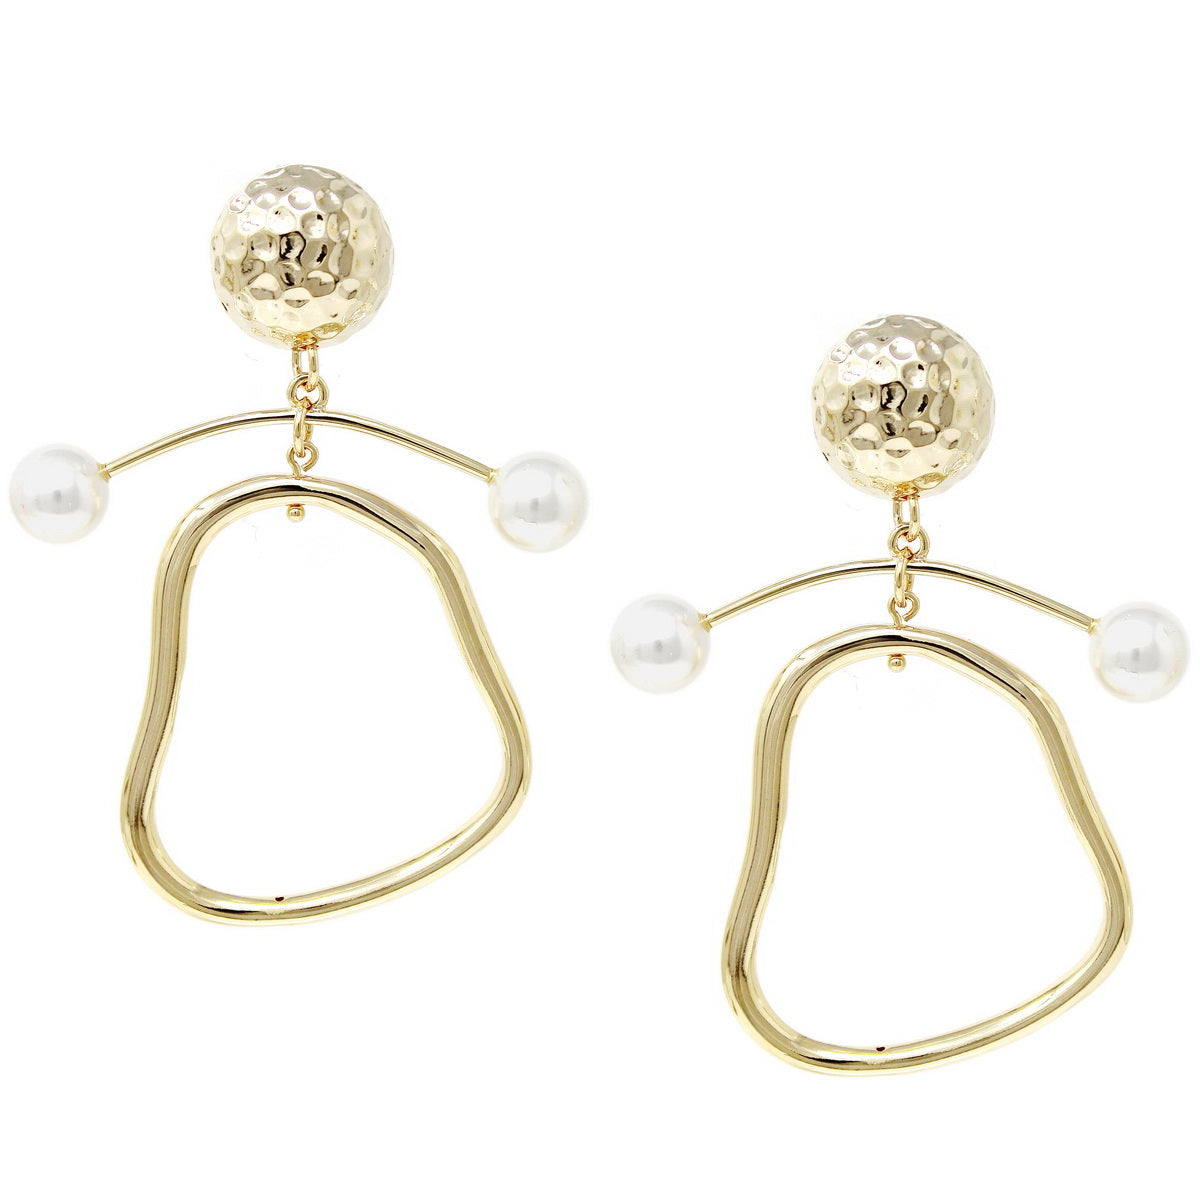 Irregular Hoop With Pearl Bar Drop Earrings